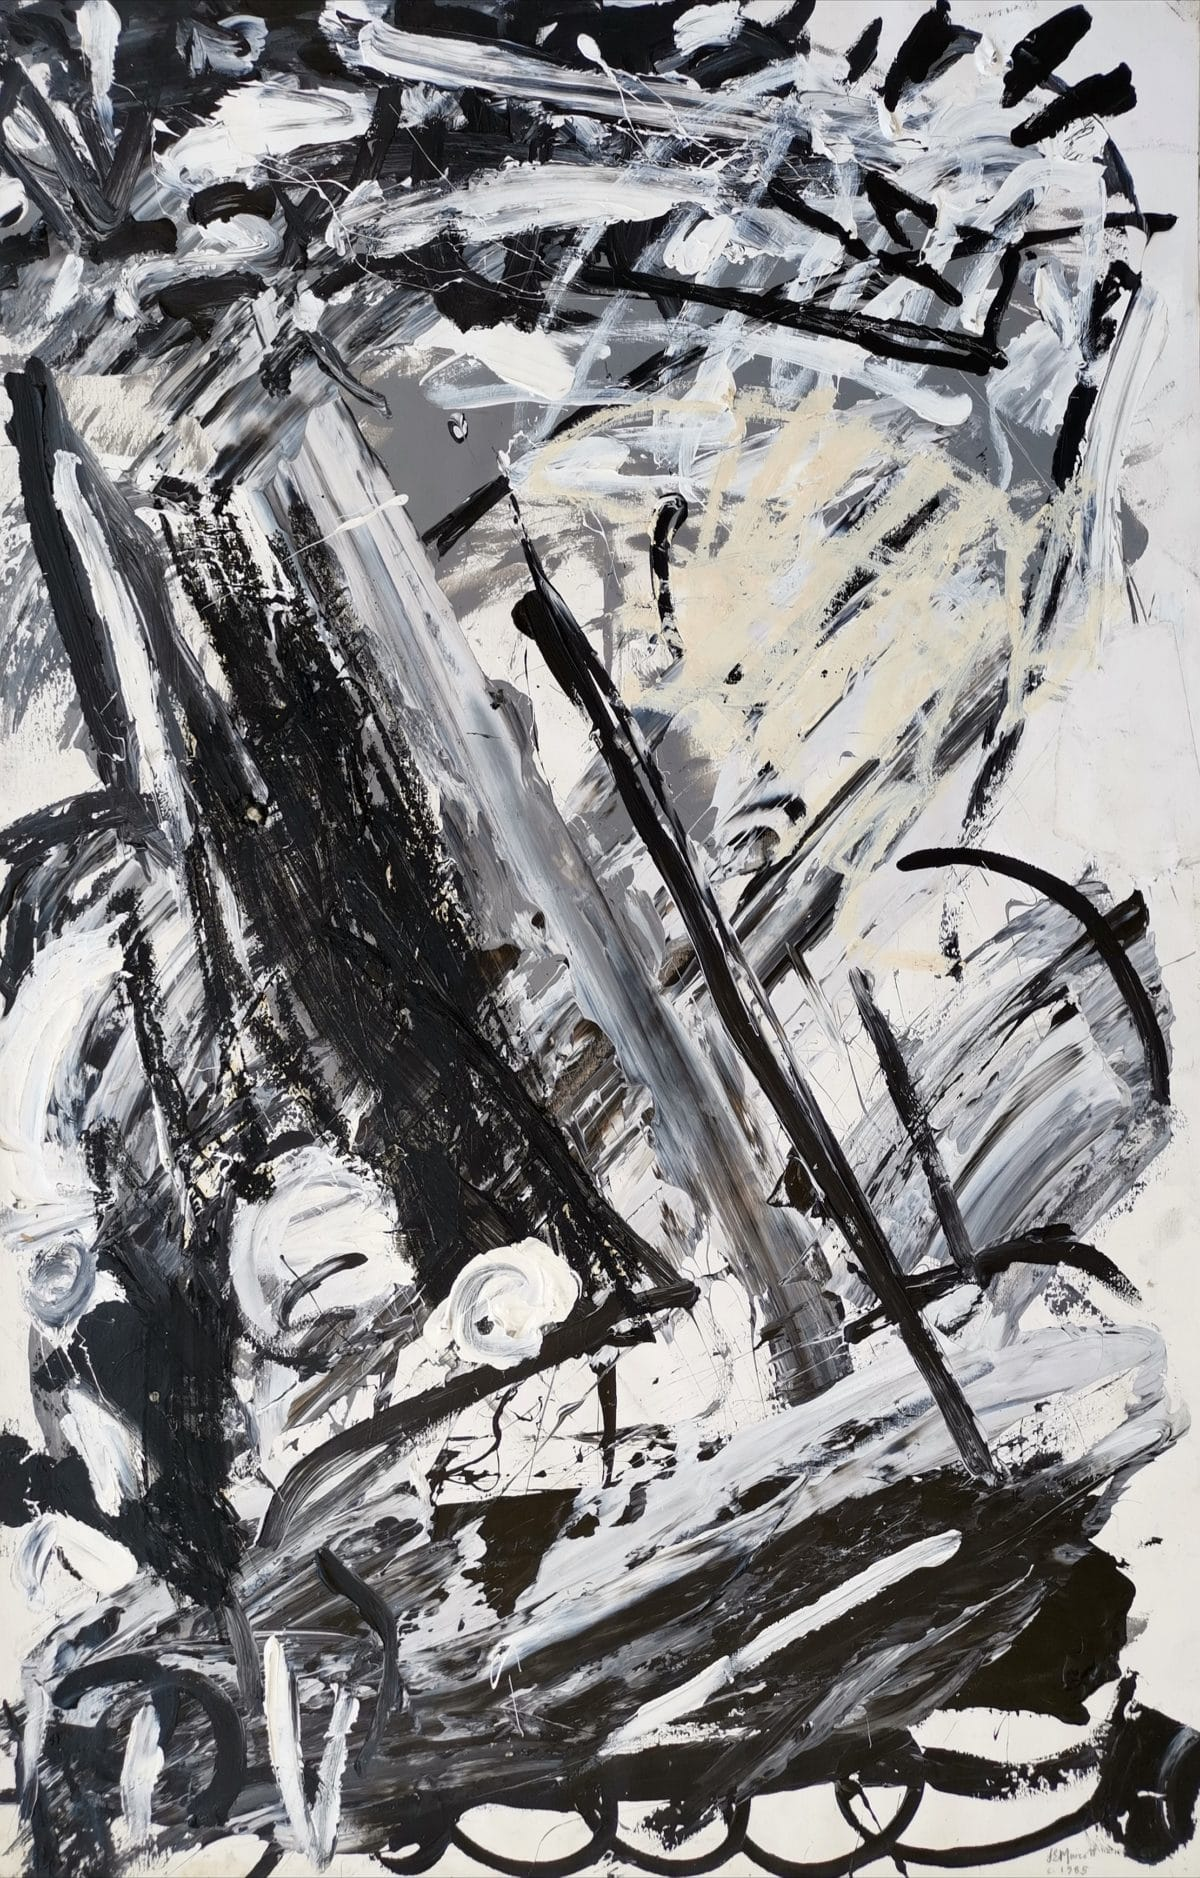 Lionel Murcott - Black and White and everything in between 1985 - Oil and MM on Fabriano